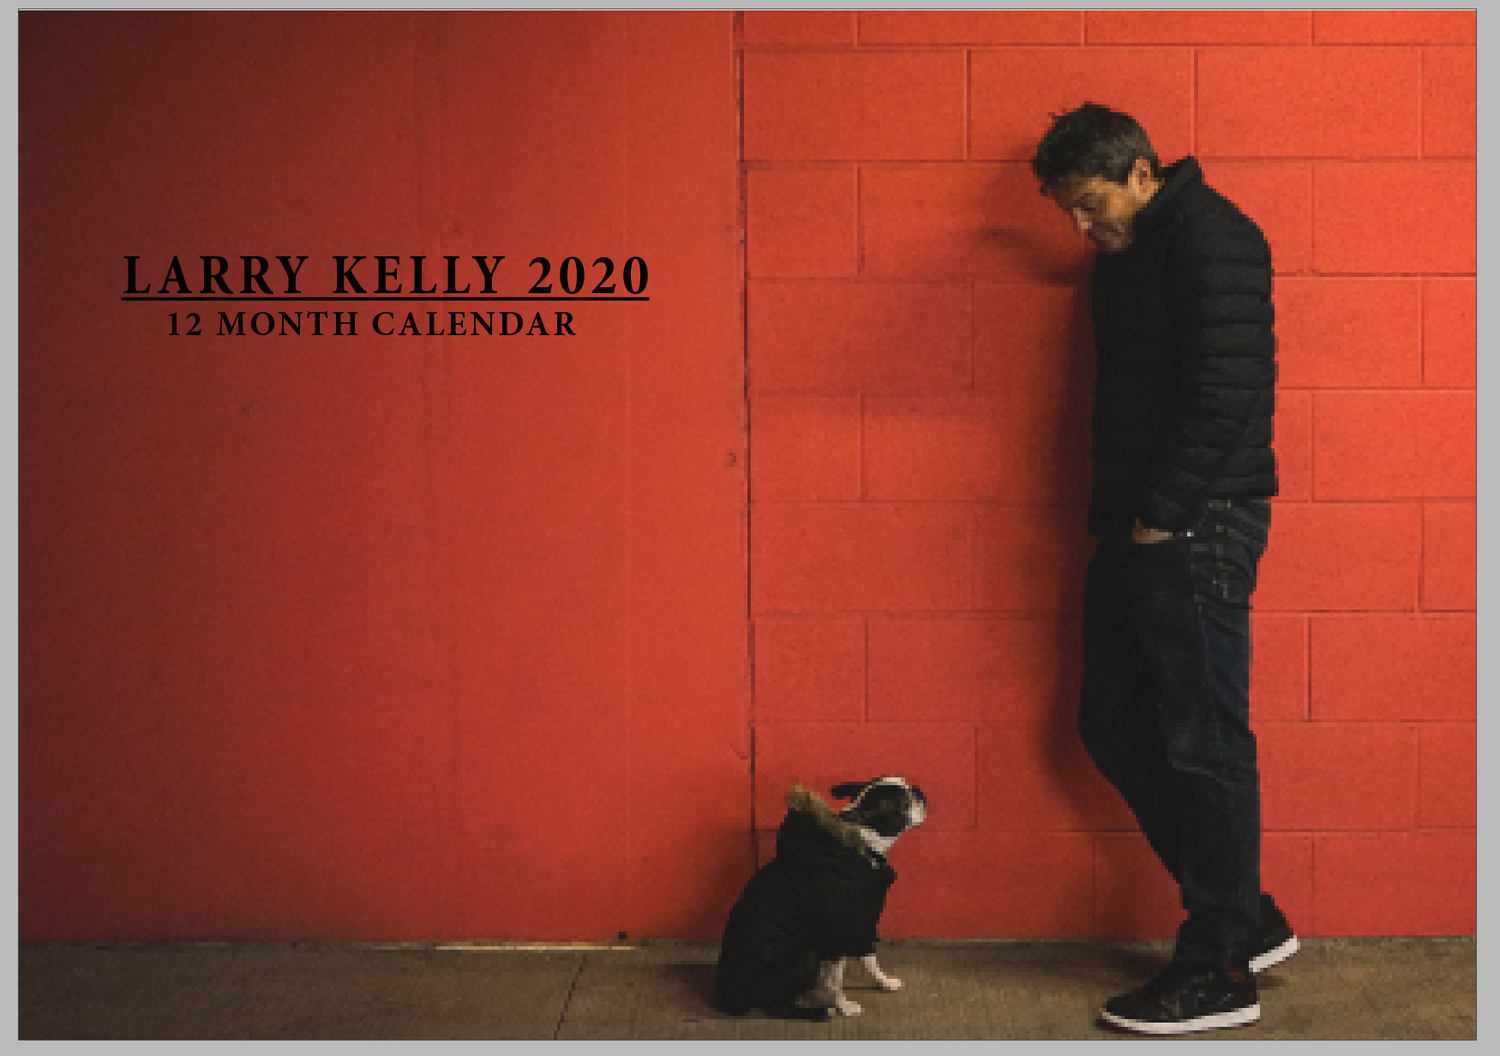 Image of Larry Kelly 2020 Calendar